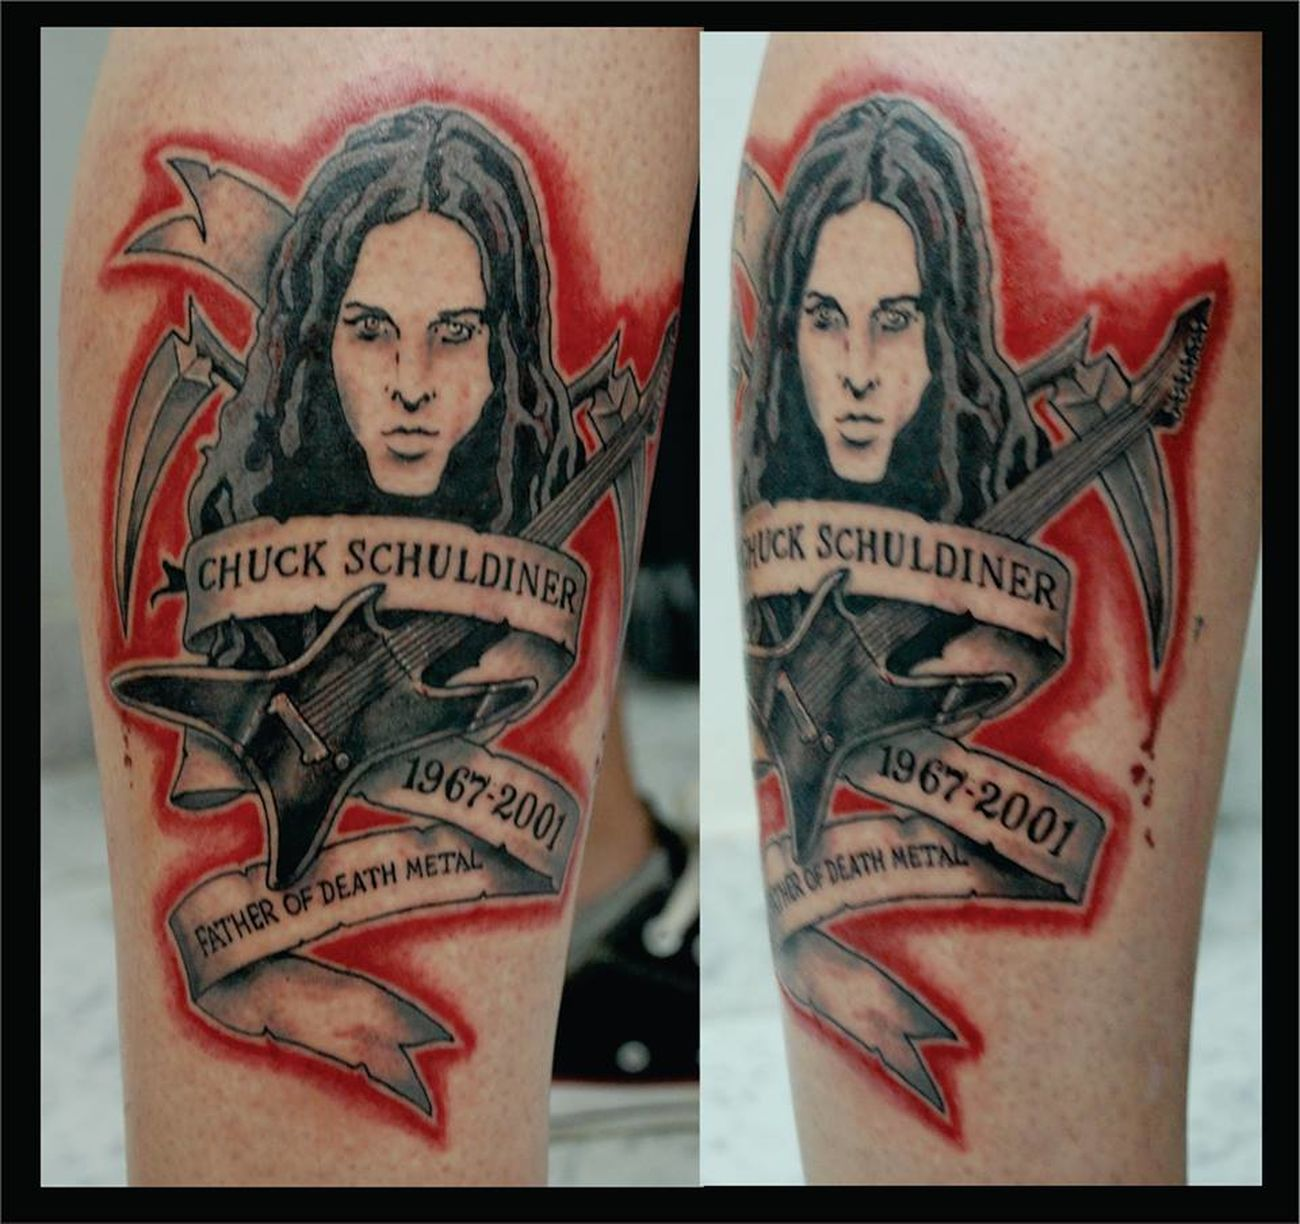 Me Tattoo Ink Chuckschuldiner Death